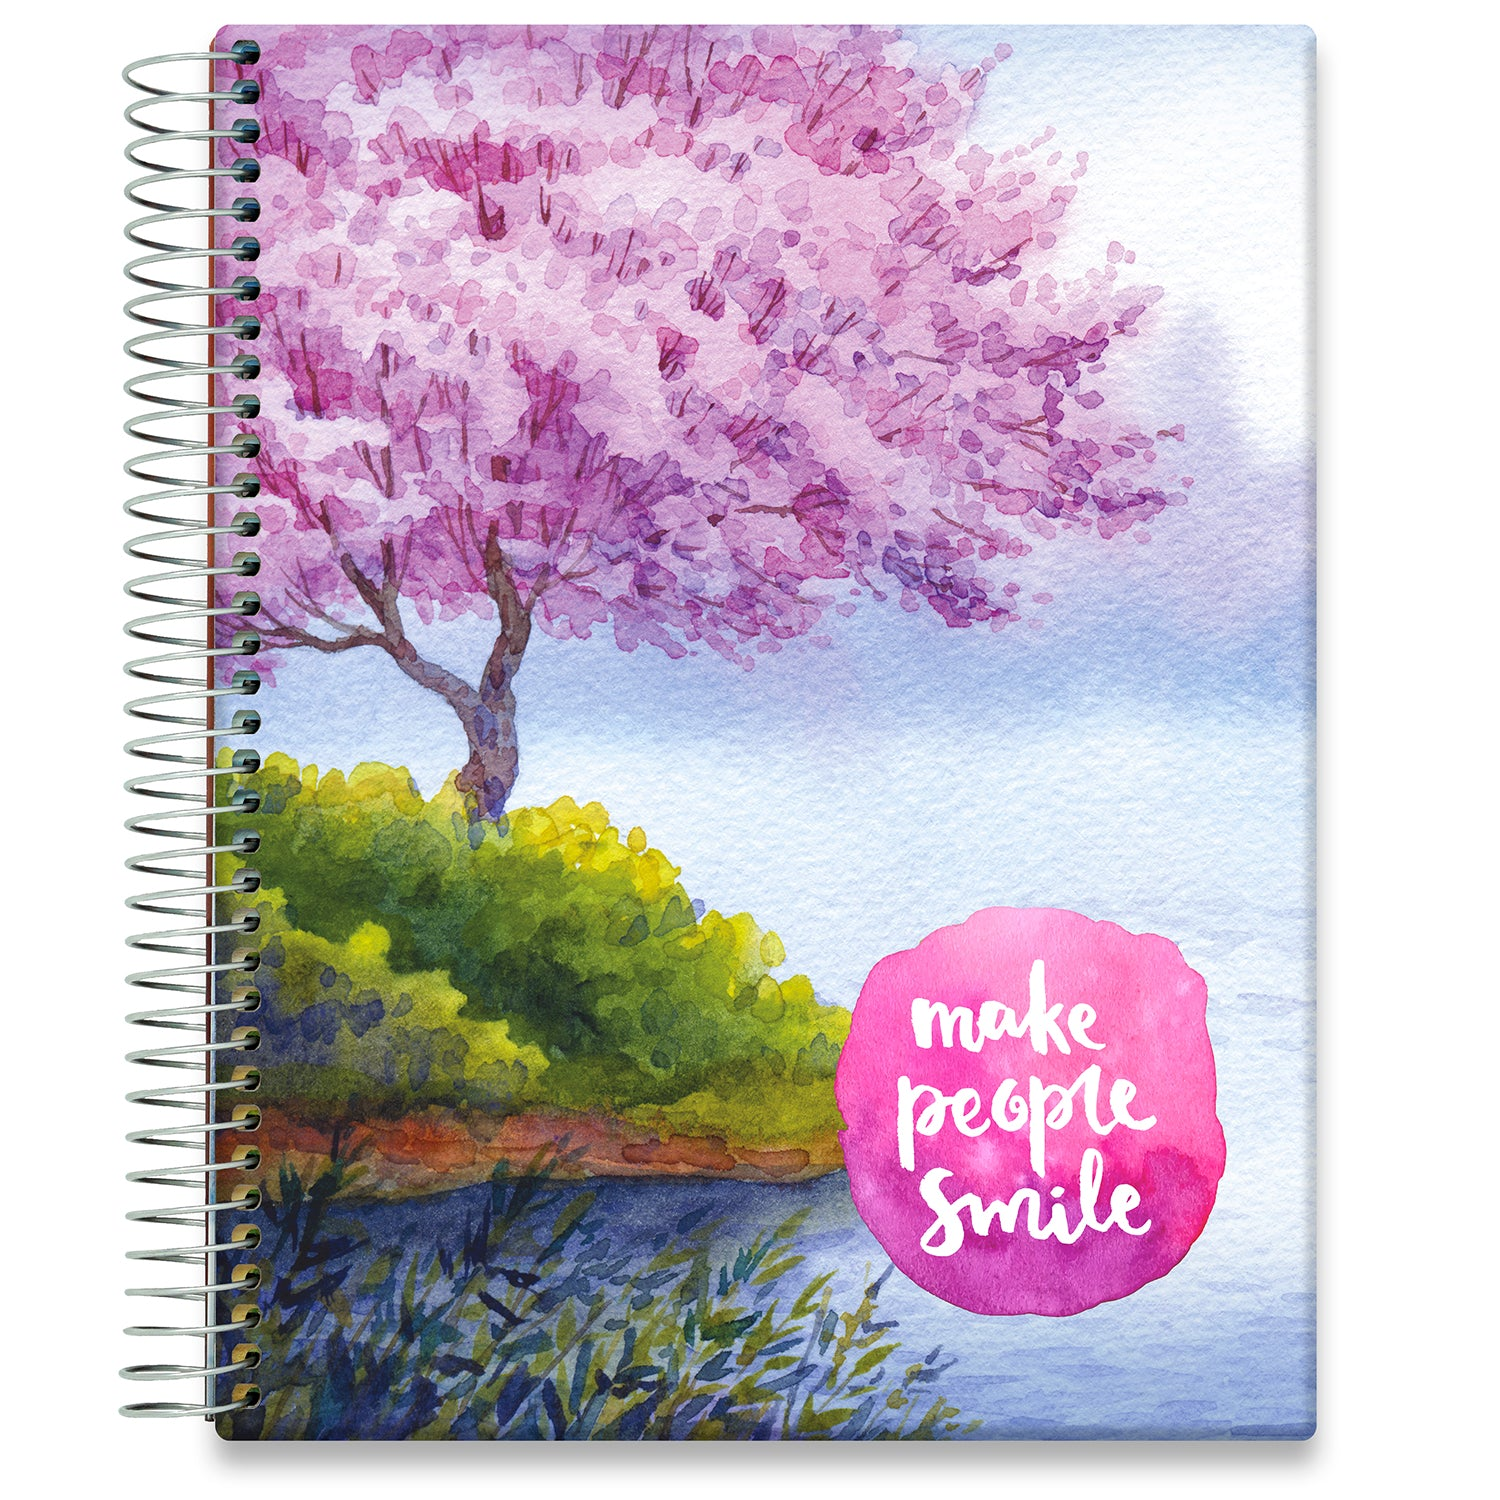 Planner 2021-2022 • April 2021 to June 2022 Academic Year • 8.5x11 Hardcover • Make People Smile